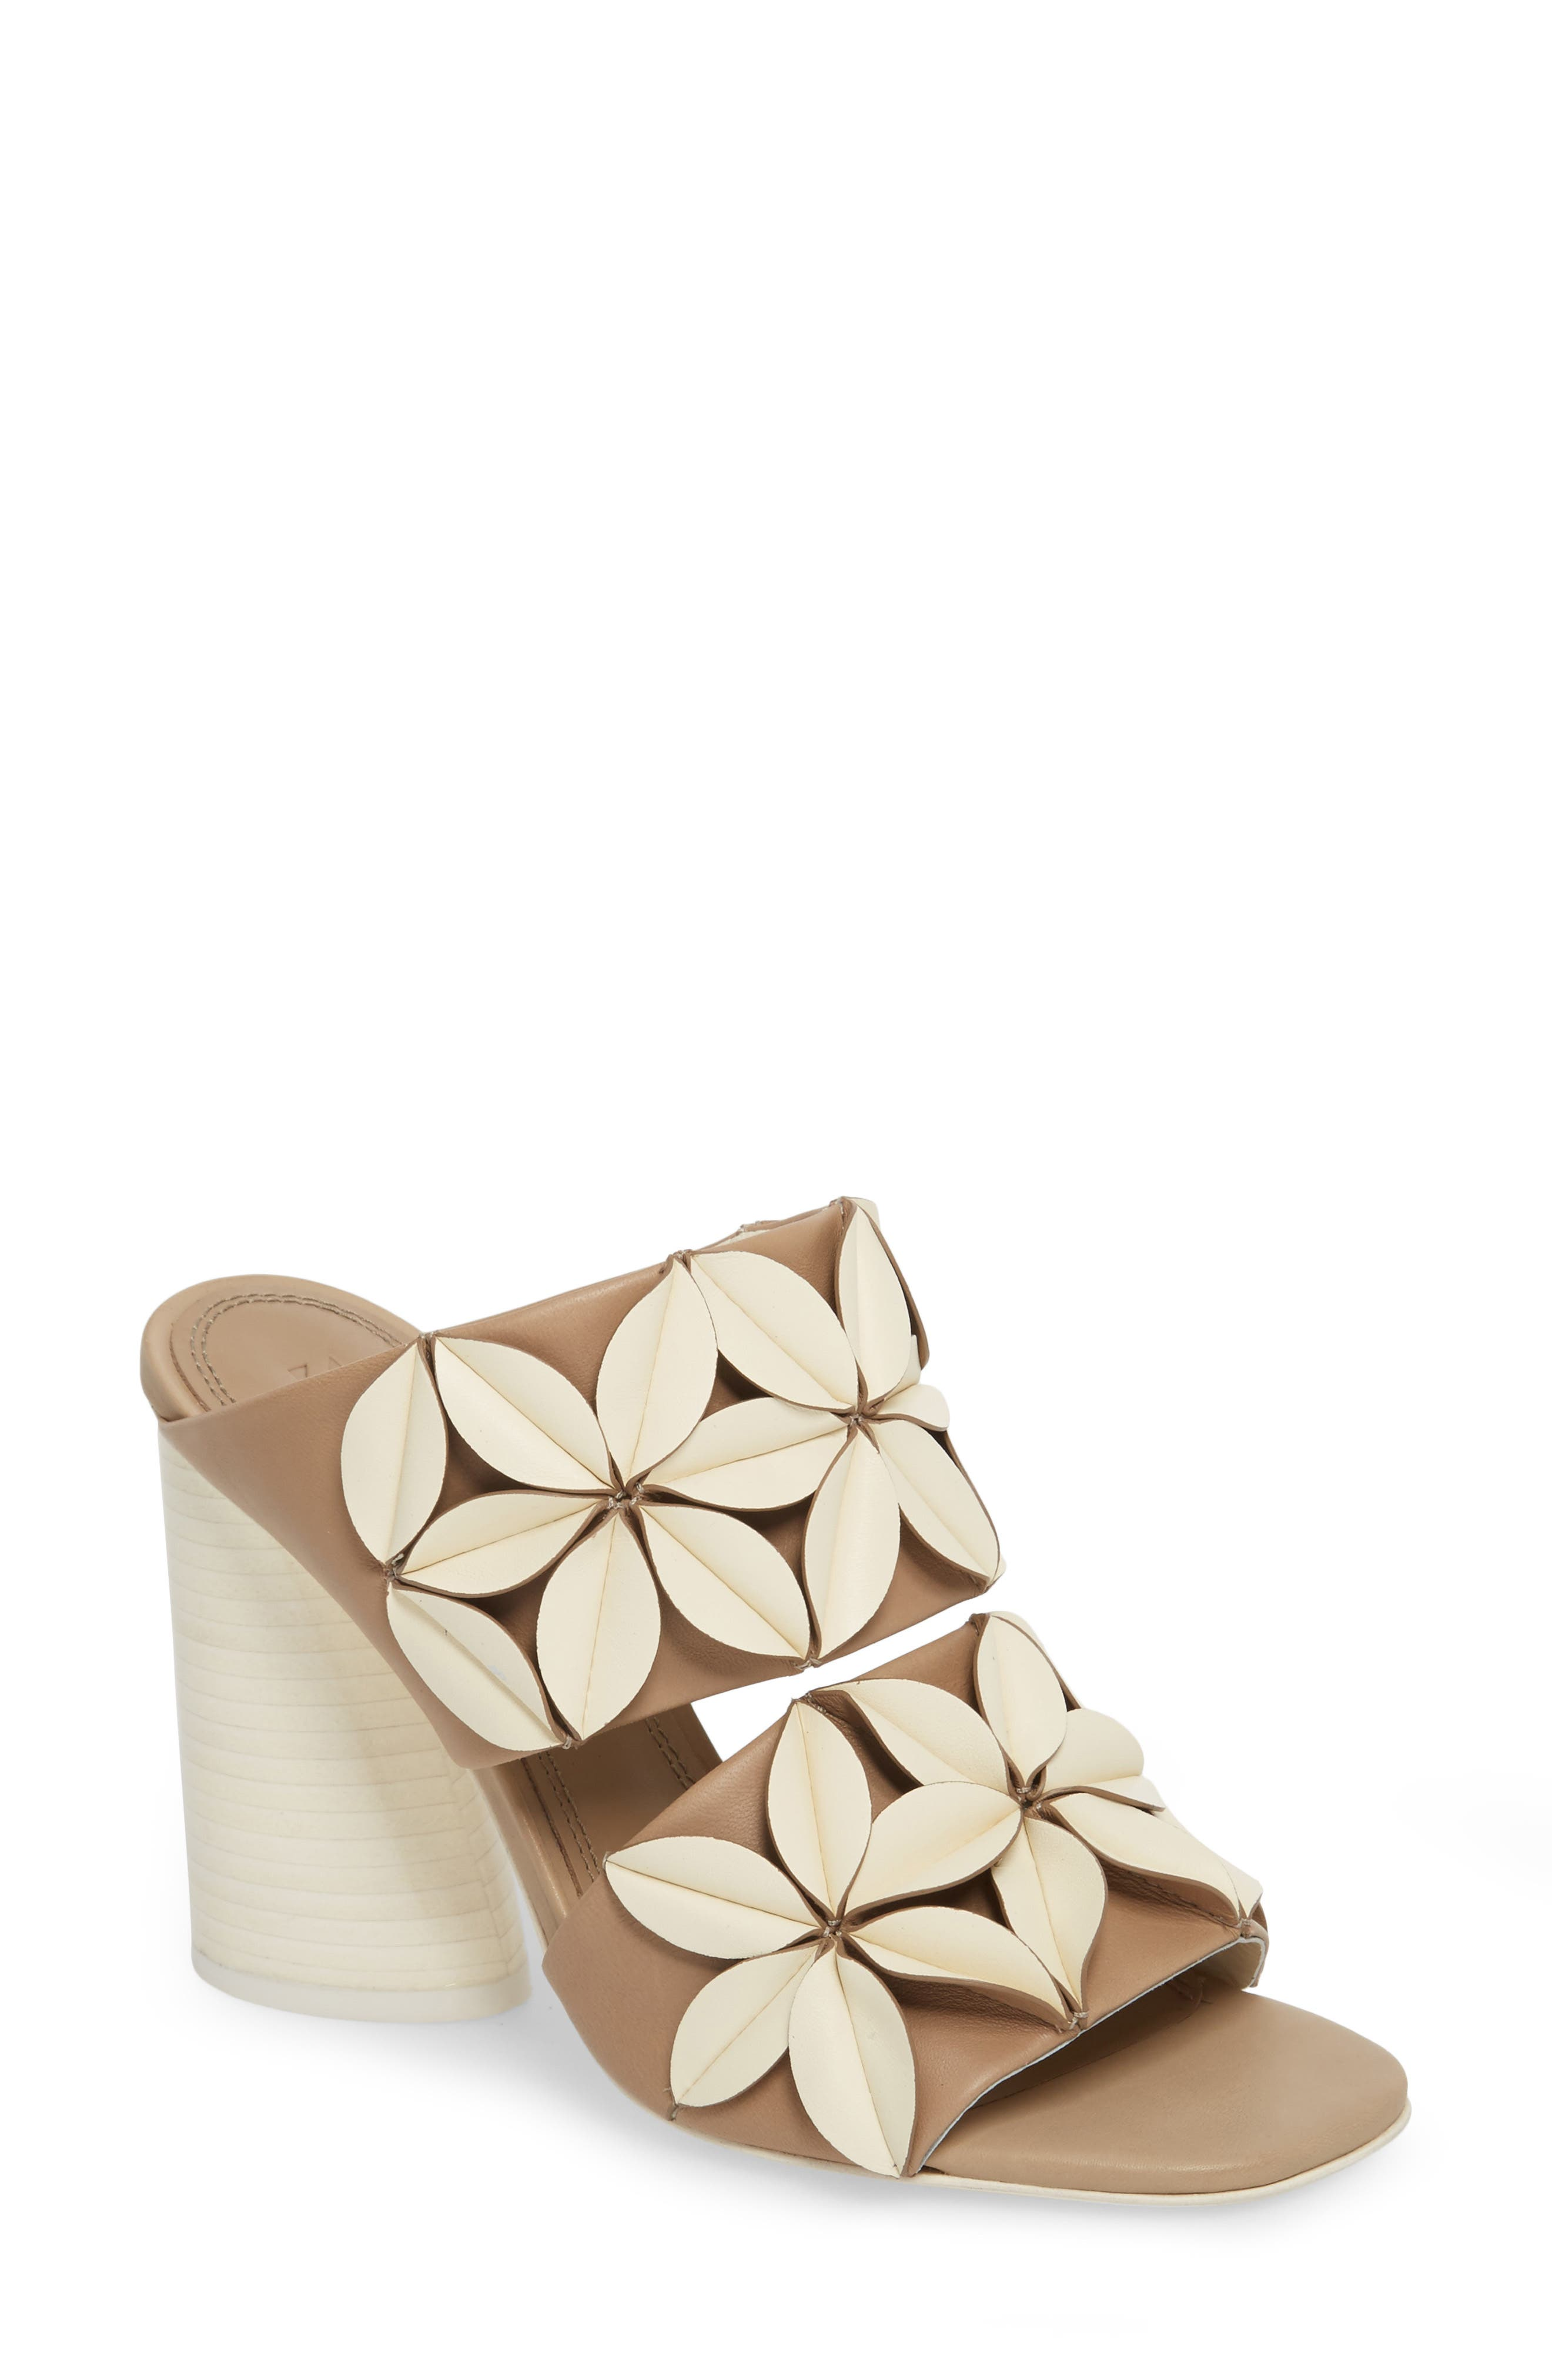 Mura Floral Embellished Mule,                         Main,                         color, Ivory/ Taupe